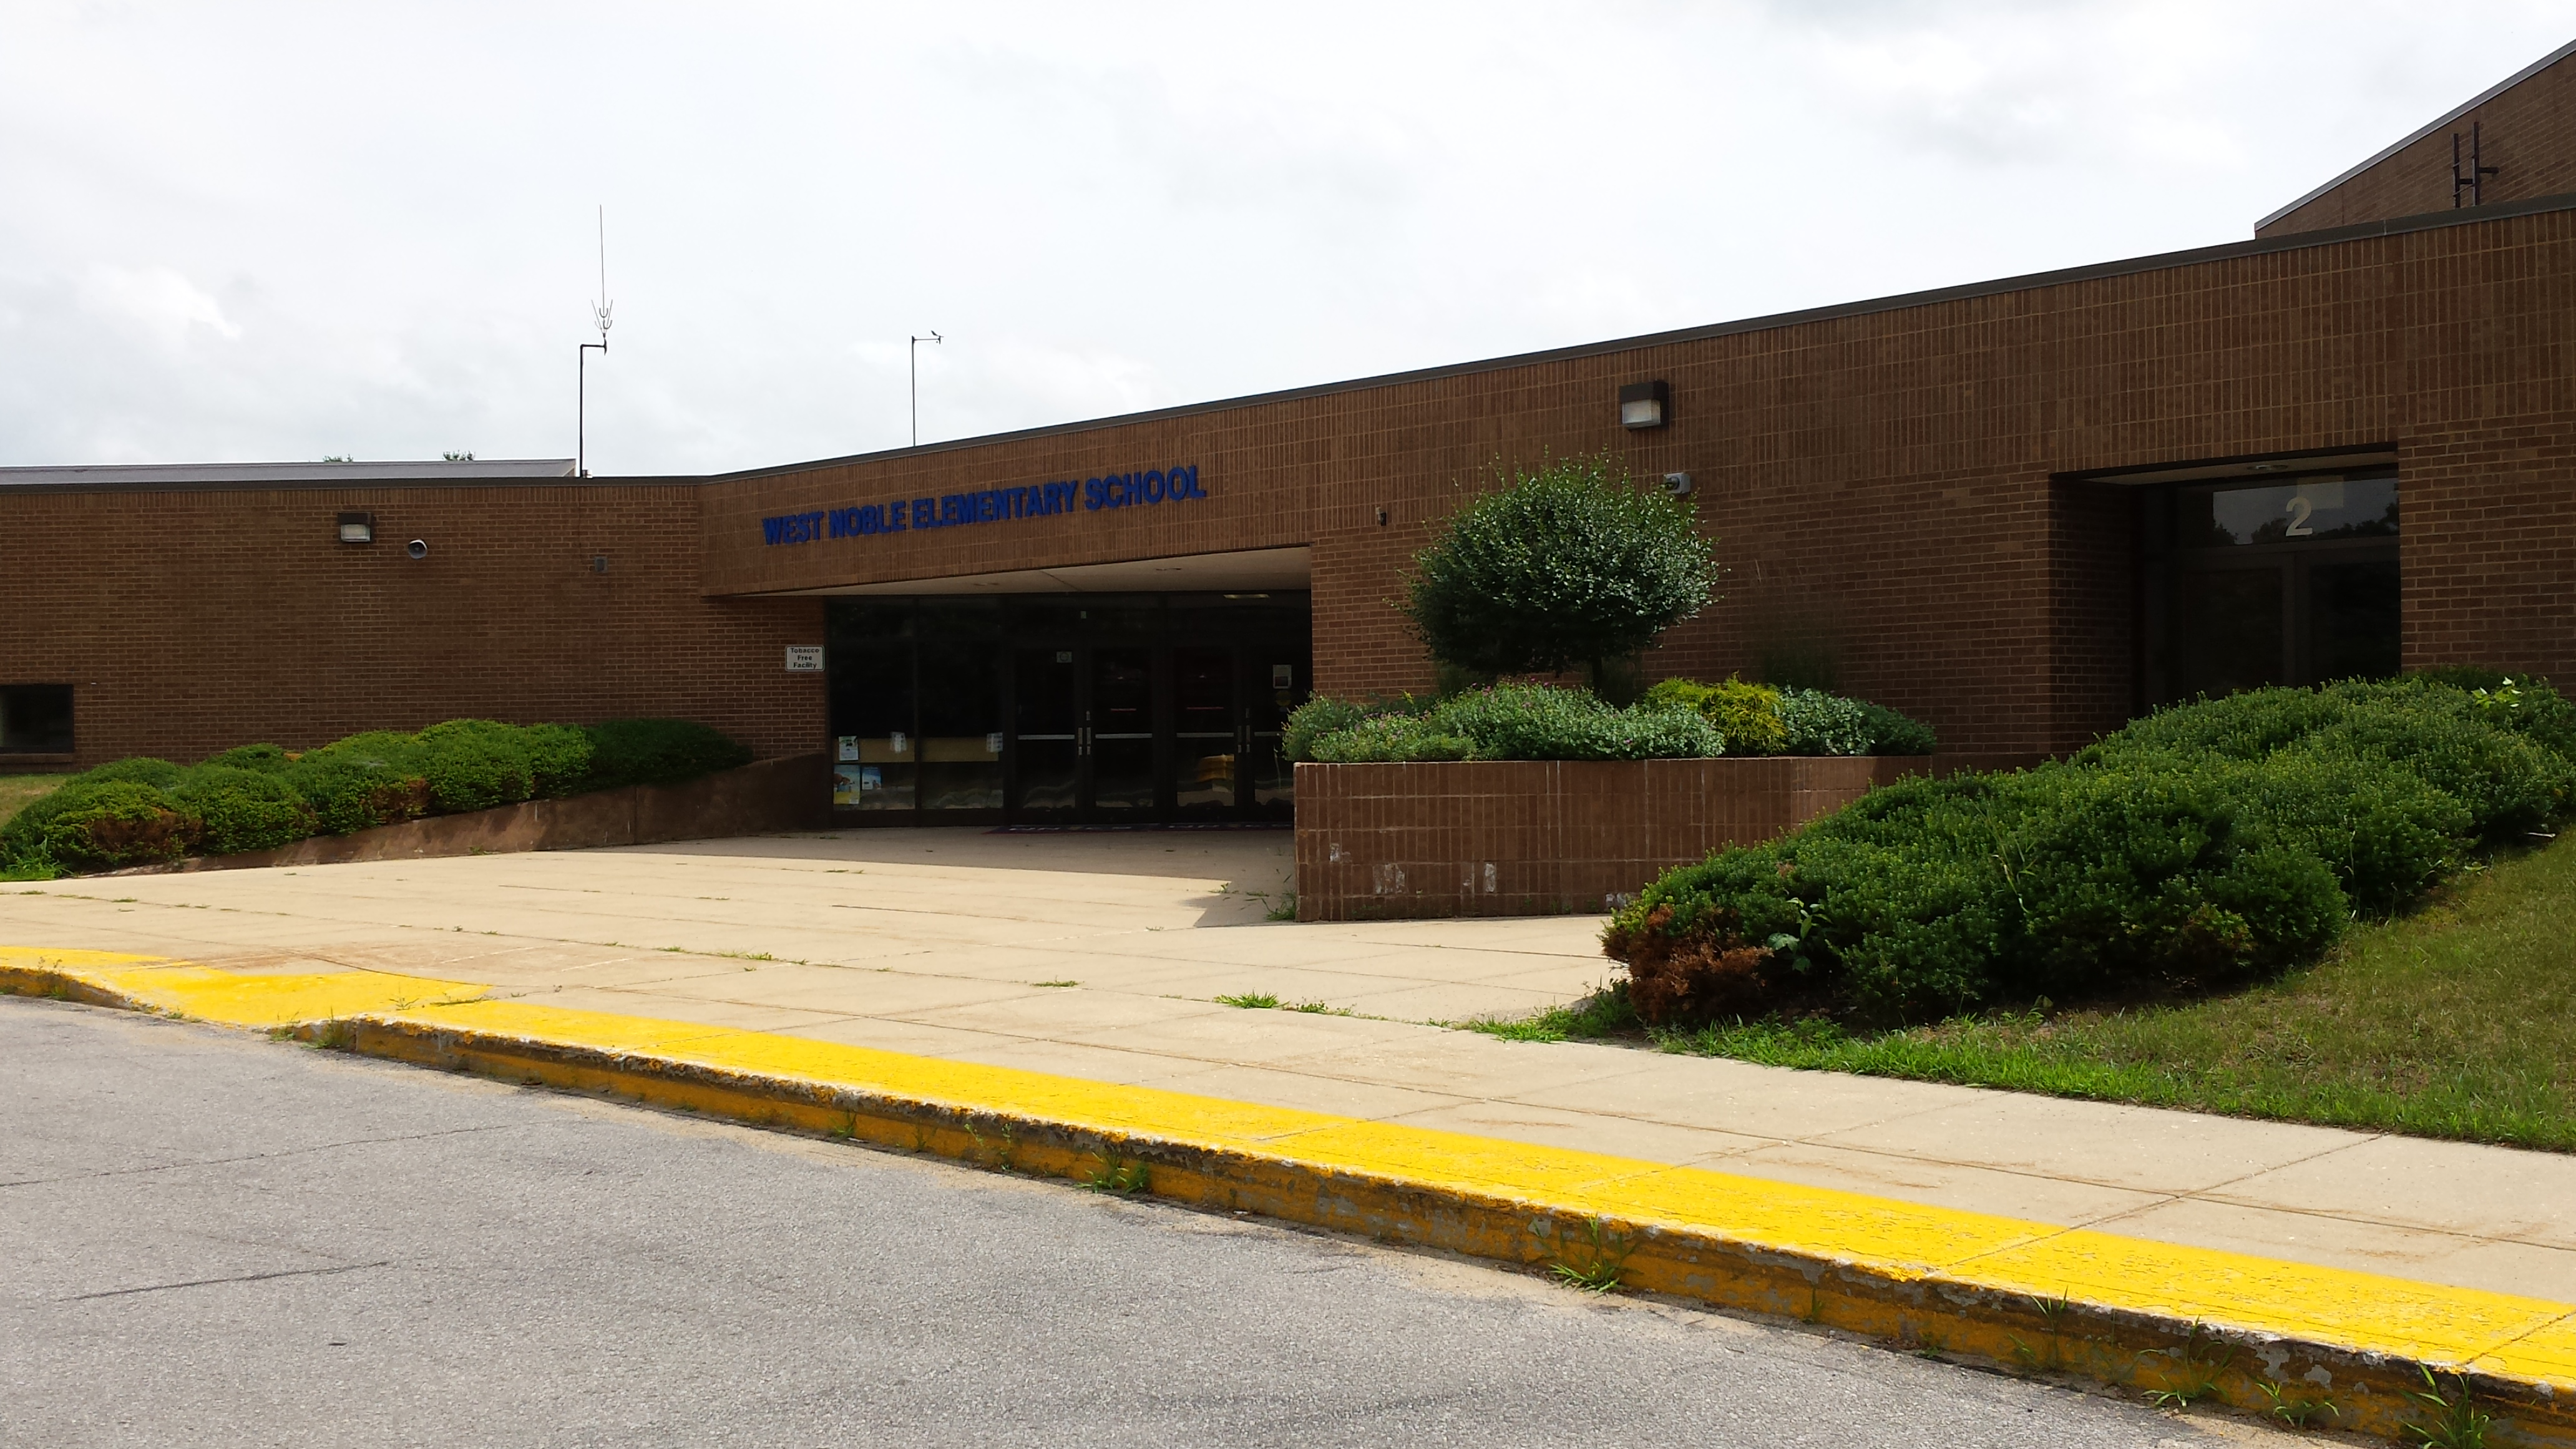 West Noble Elementary School